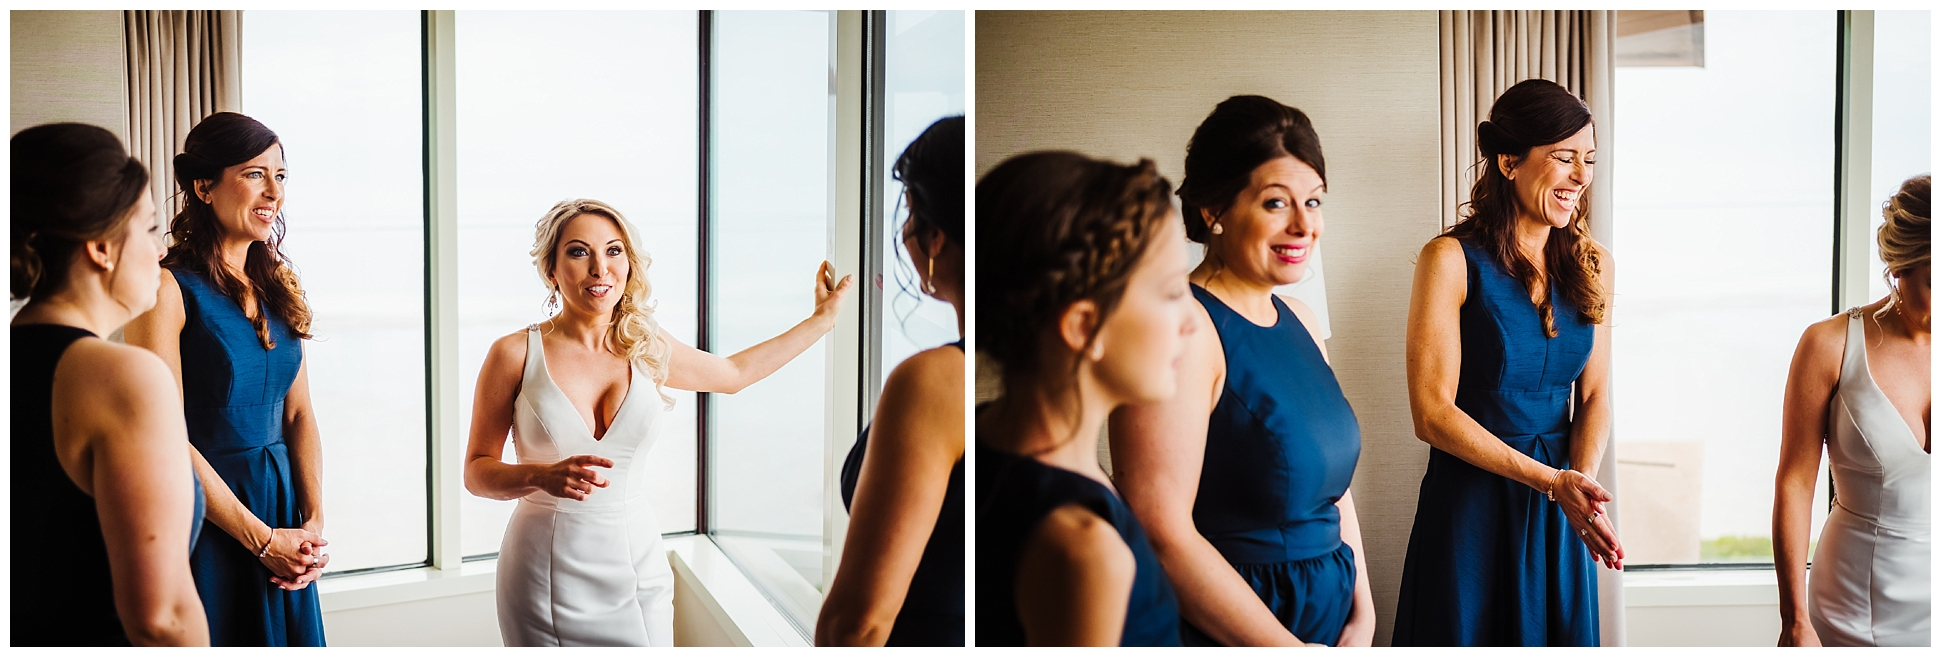 tampa-wedding-photographer-sacred-heart-armature-works-theater-riverfront_0010.jpg